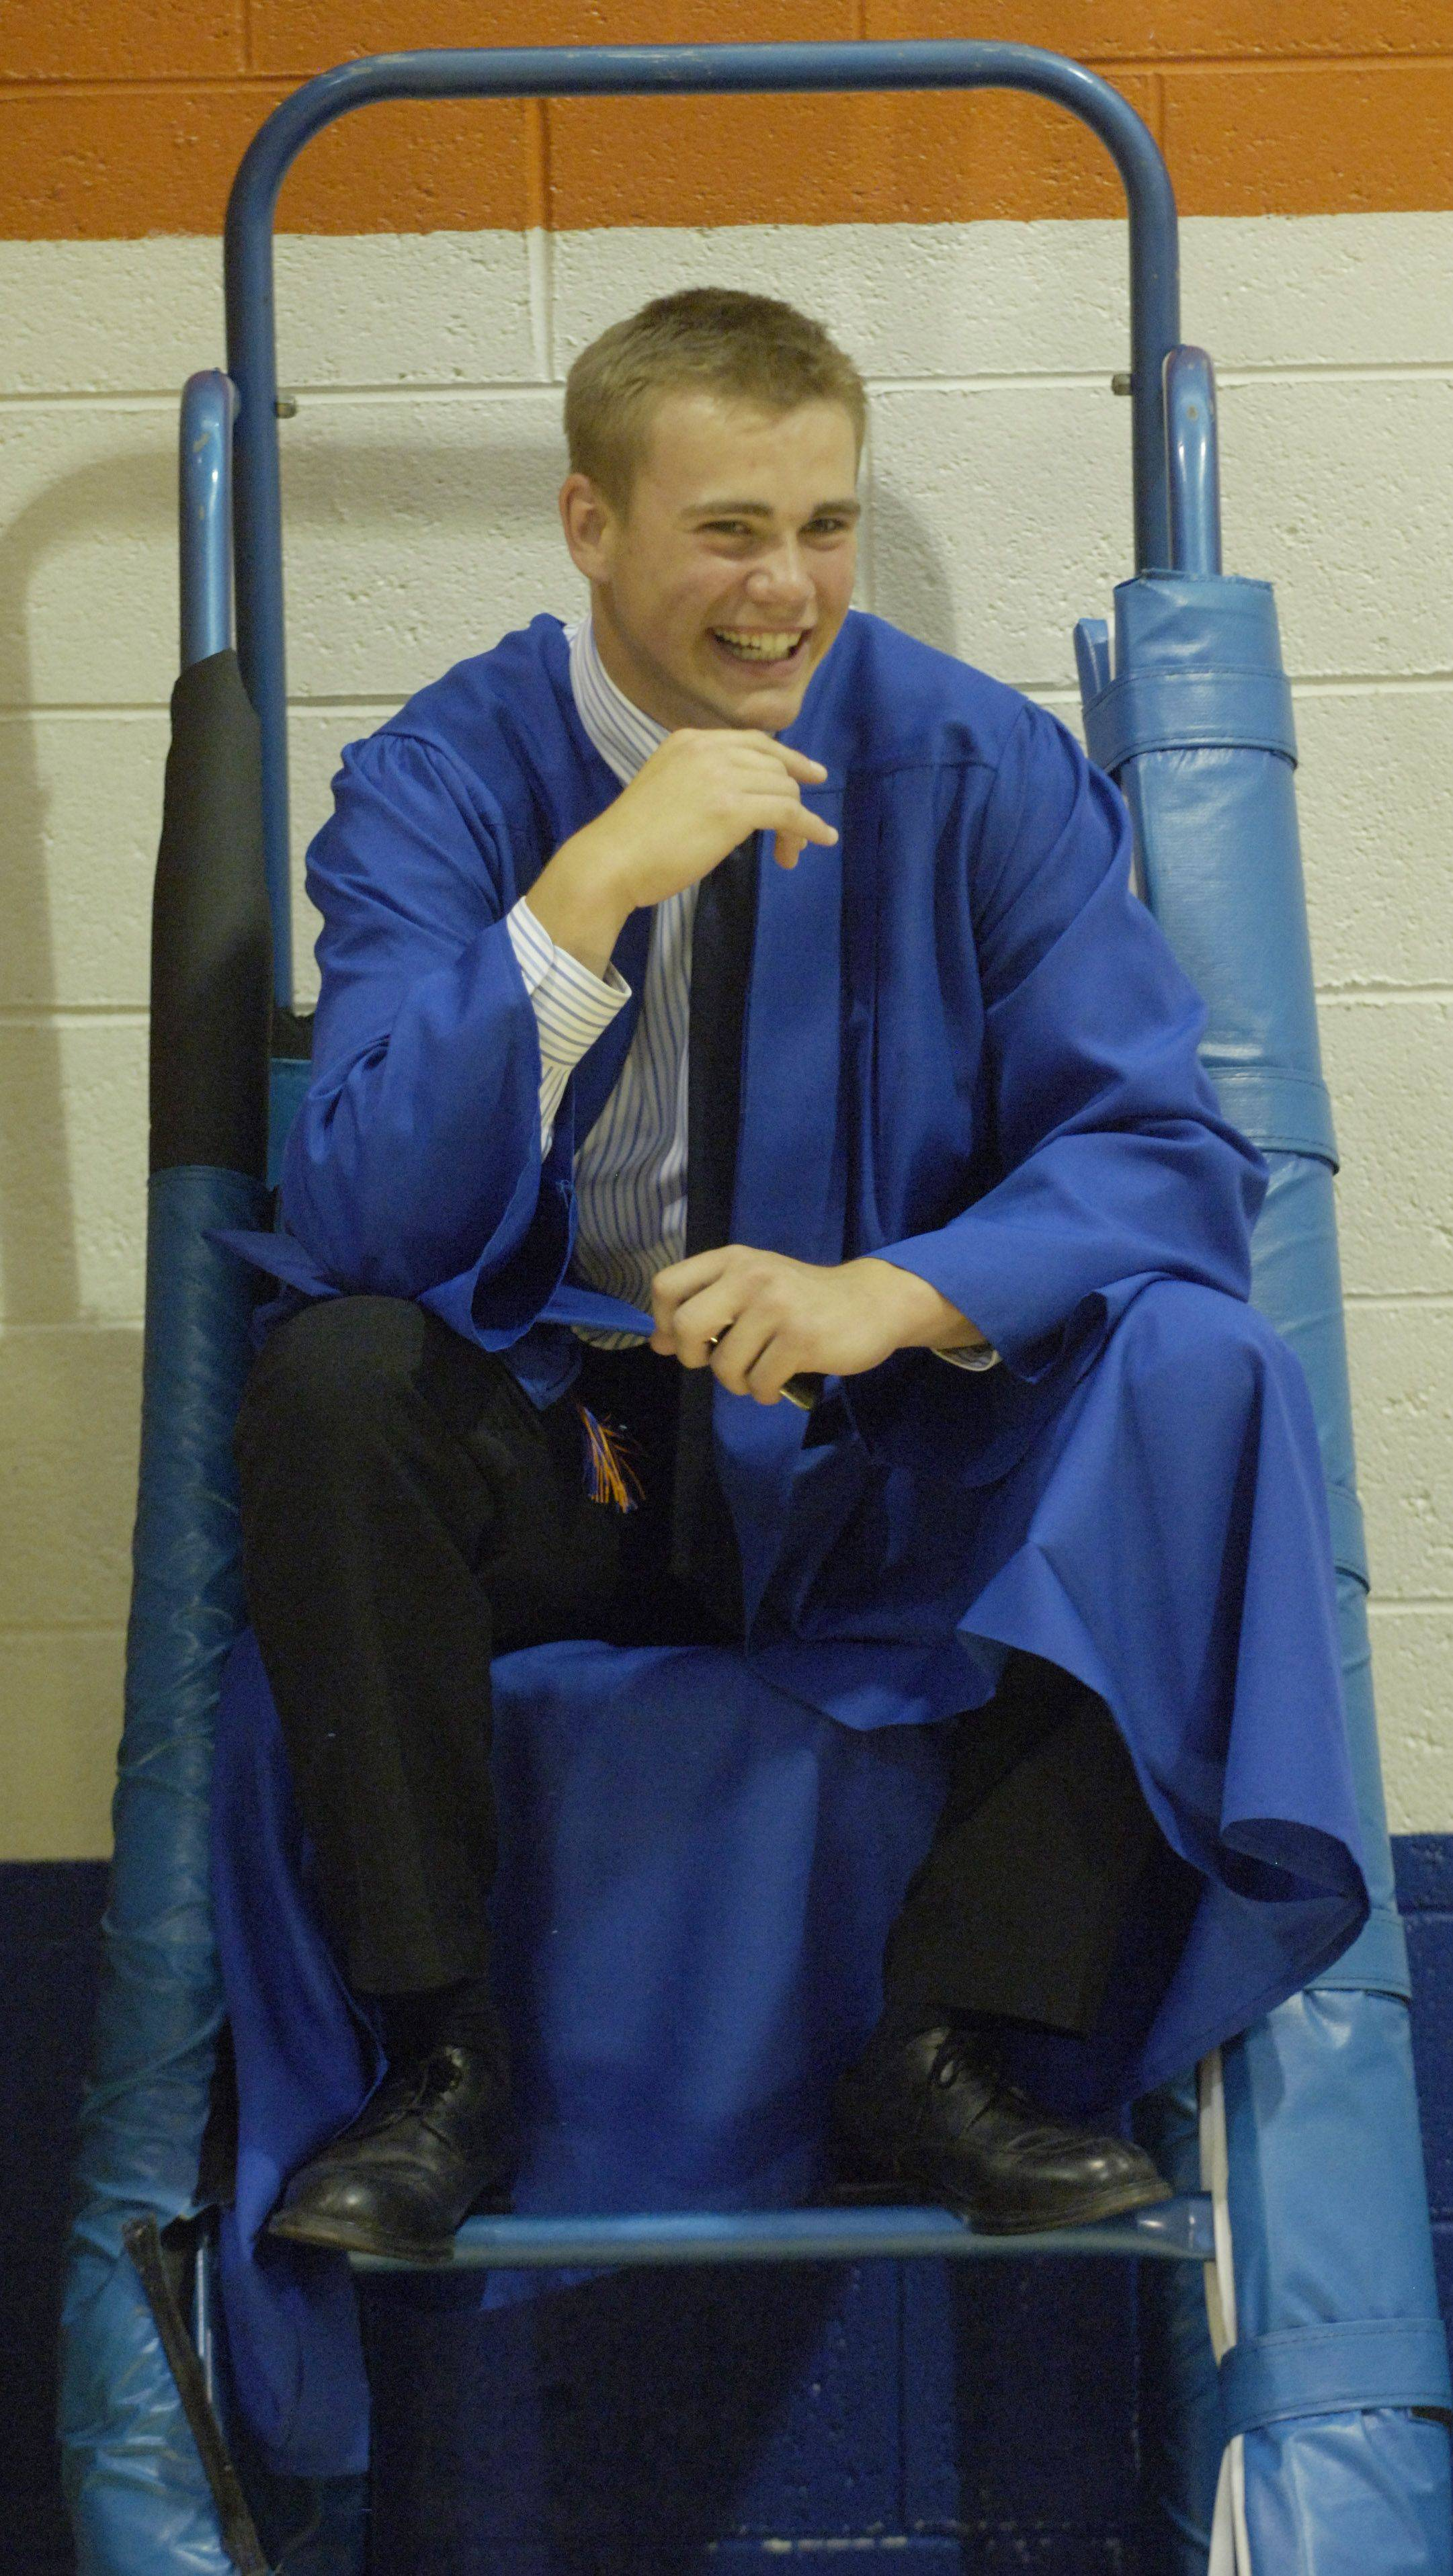 Images from the Fenton High School graduation on Sunday, May 22nd.